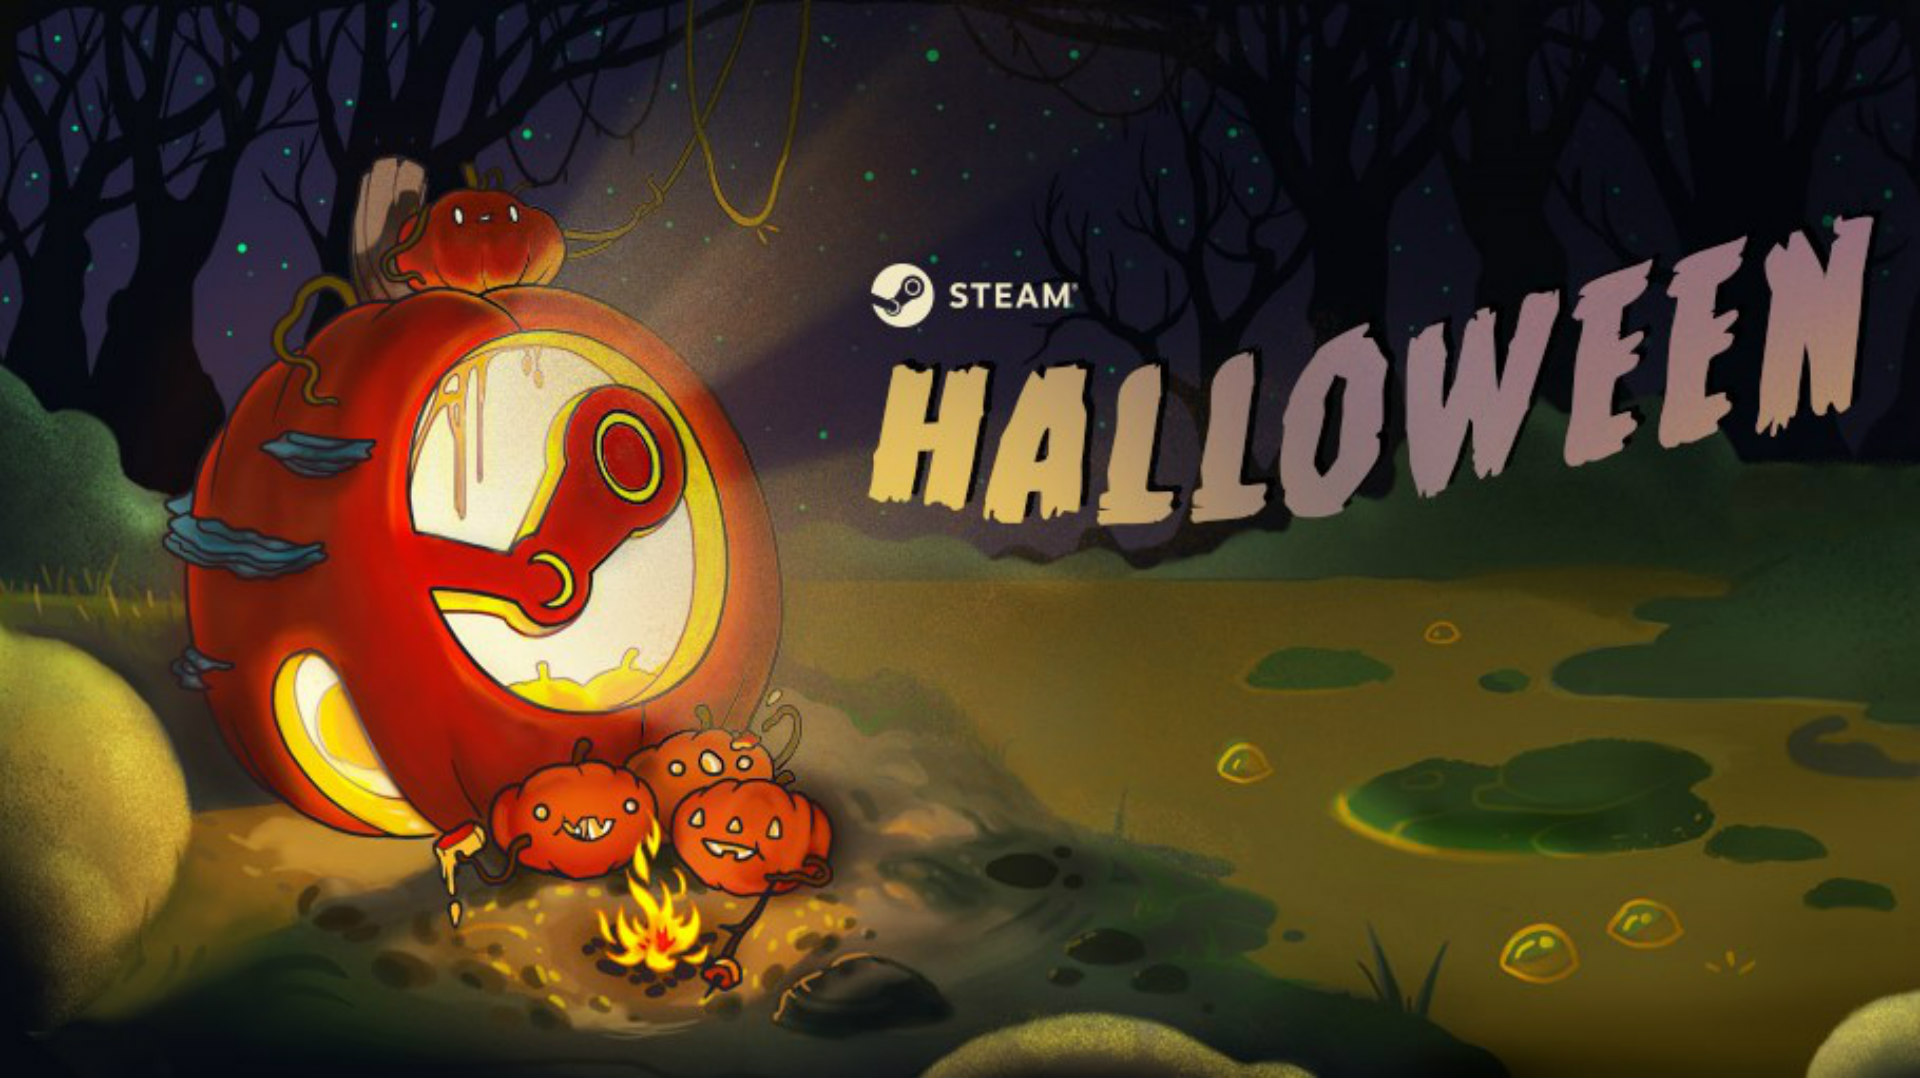 Steam Halloween Sale Sees Massive Discounts On More Than Just VR Horror